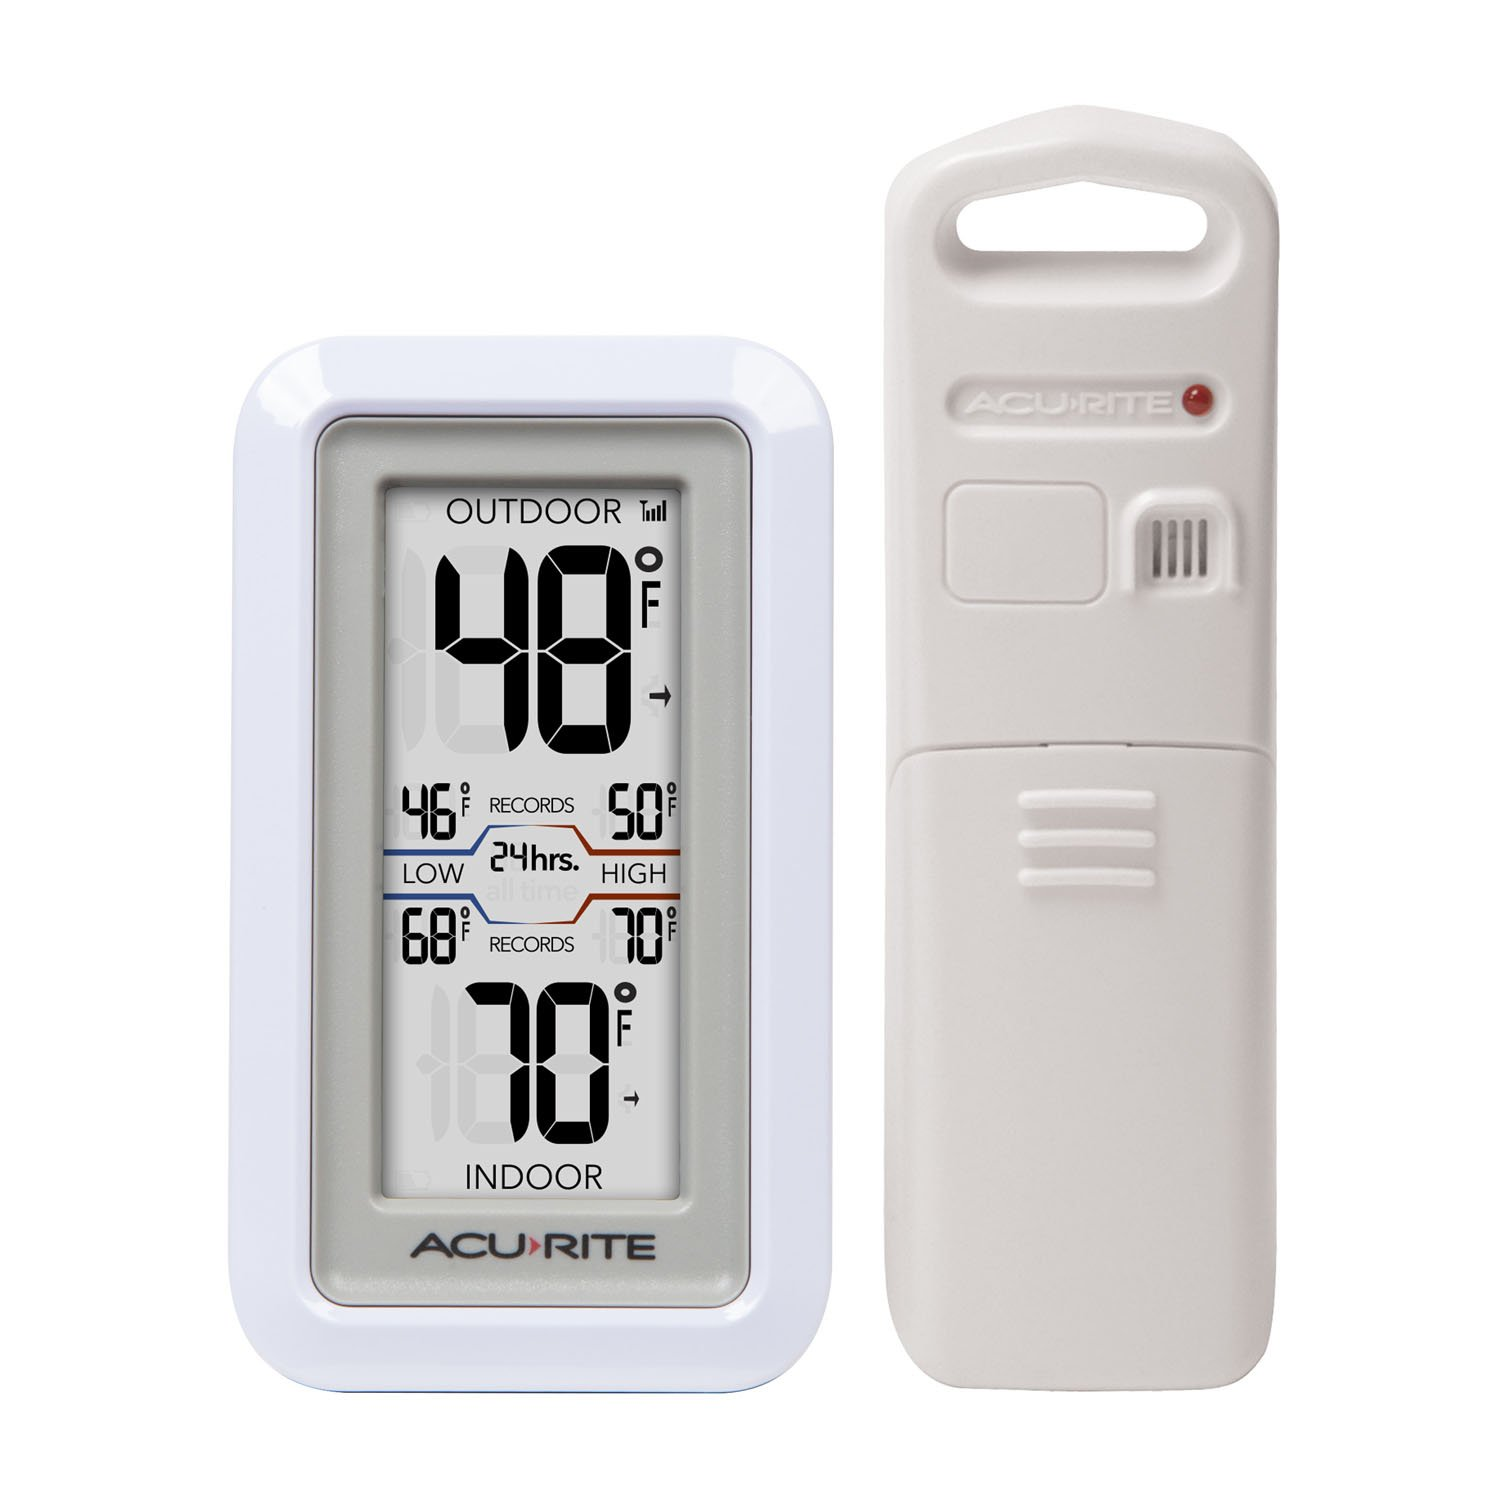 AcuRite 02043 Digital Thermometer with Indoor/Outdoor Temperature Chaney Instruments